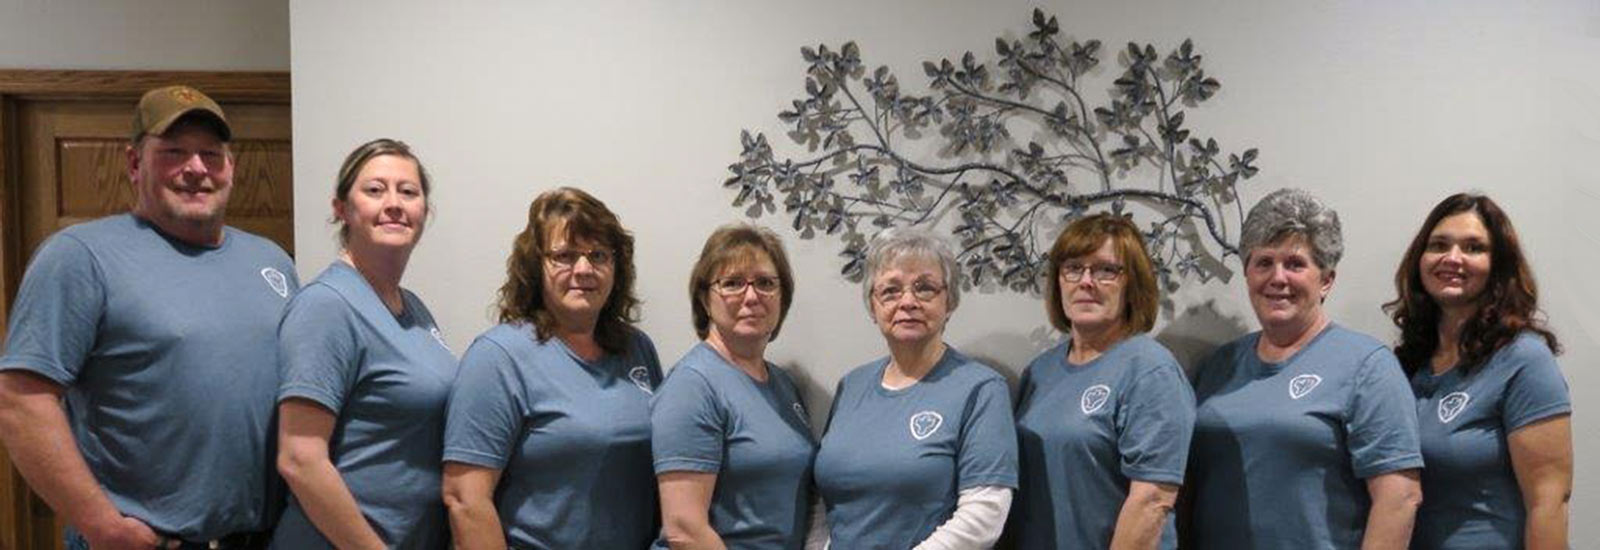 our staff at hickory county health